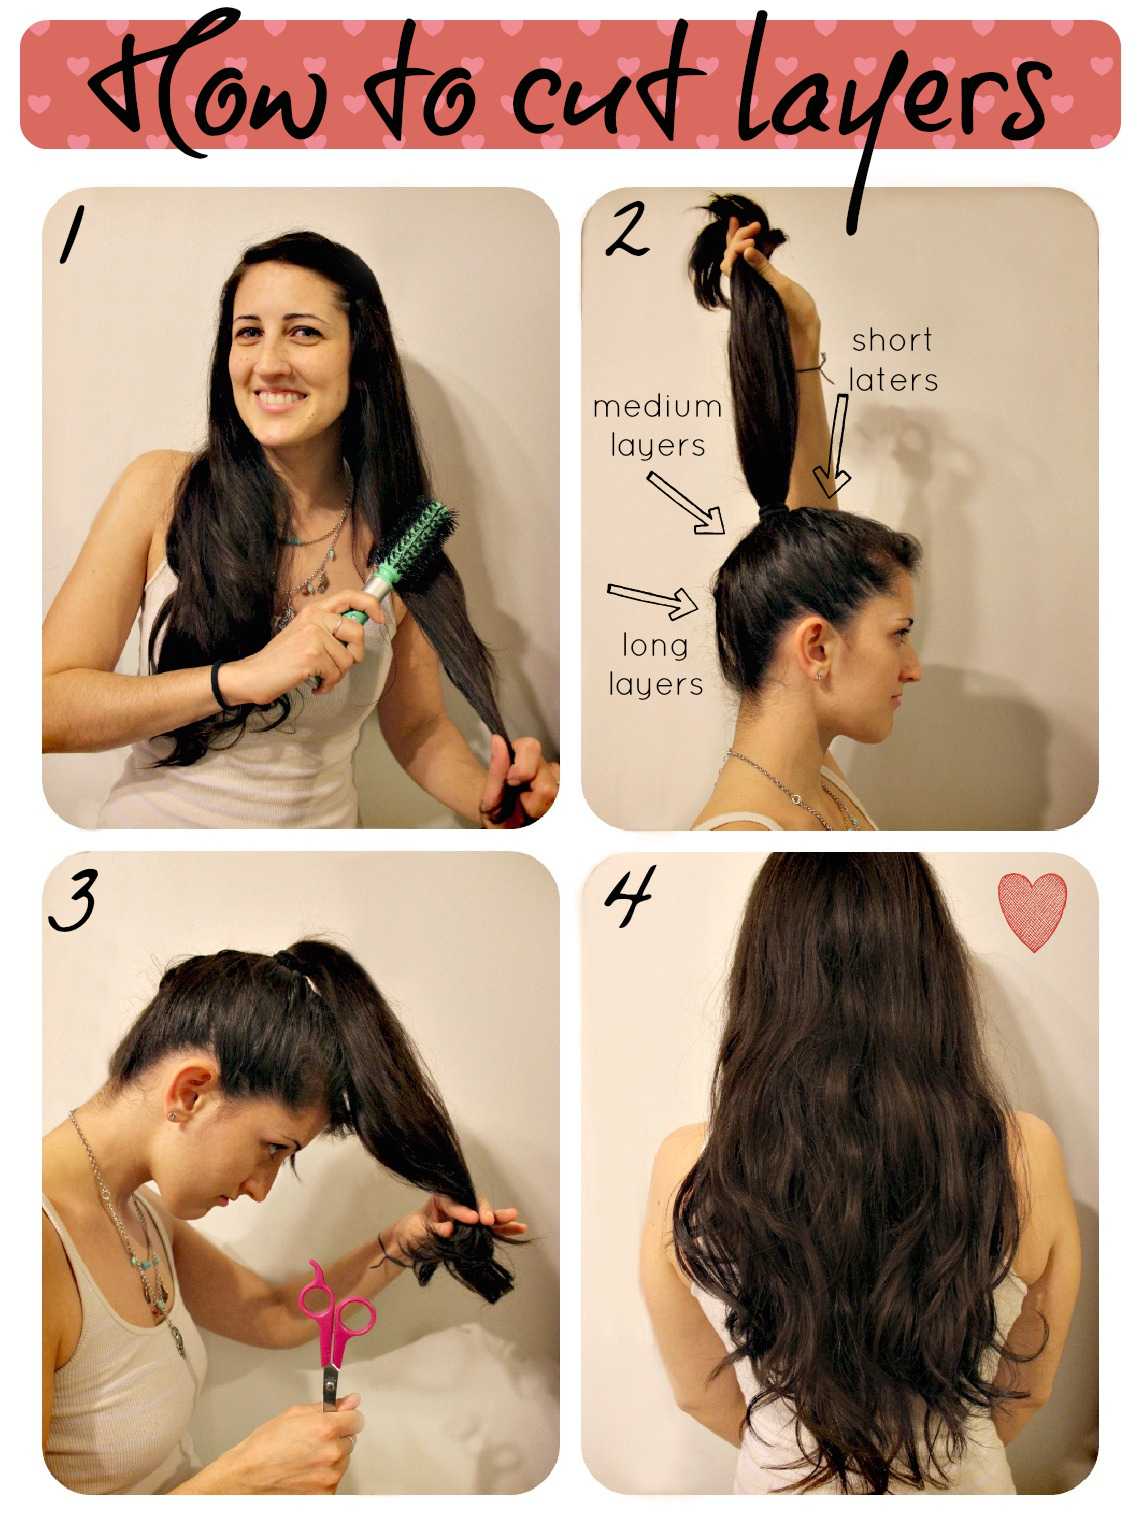 4 Ponytail Haircut Layers : ponytail, haircut, layers, Layers, Diary, Crafter